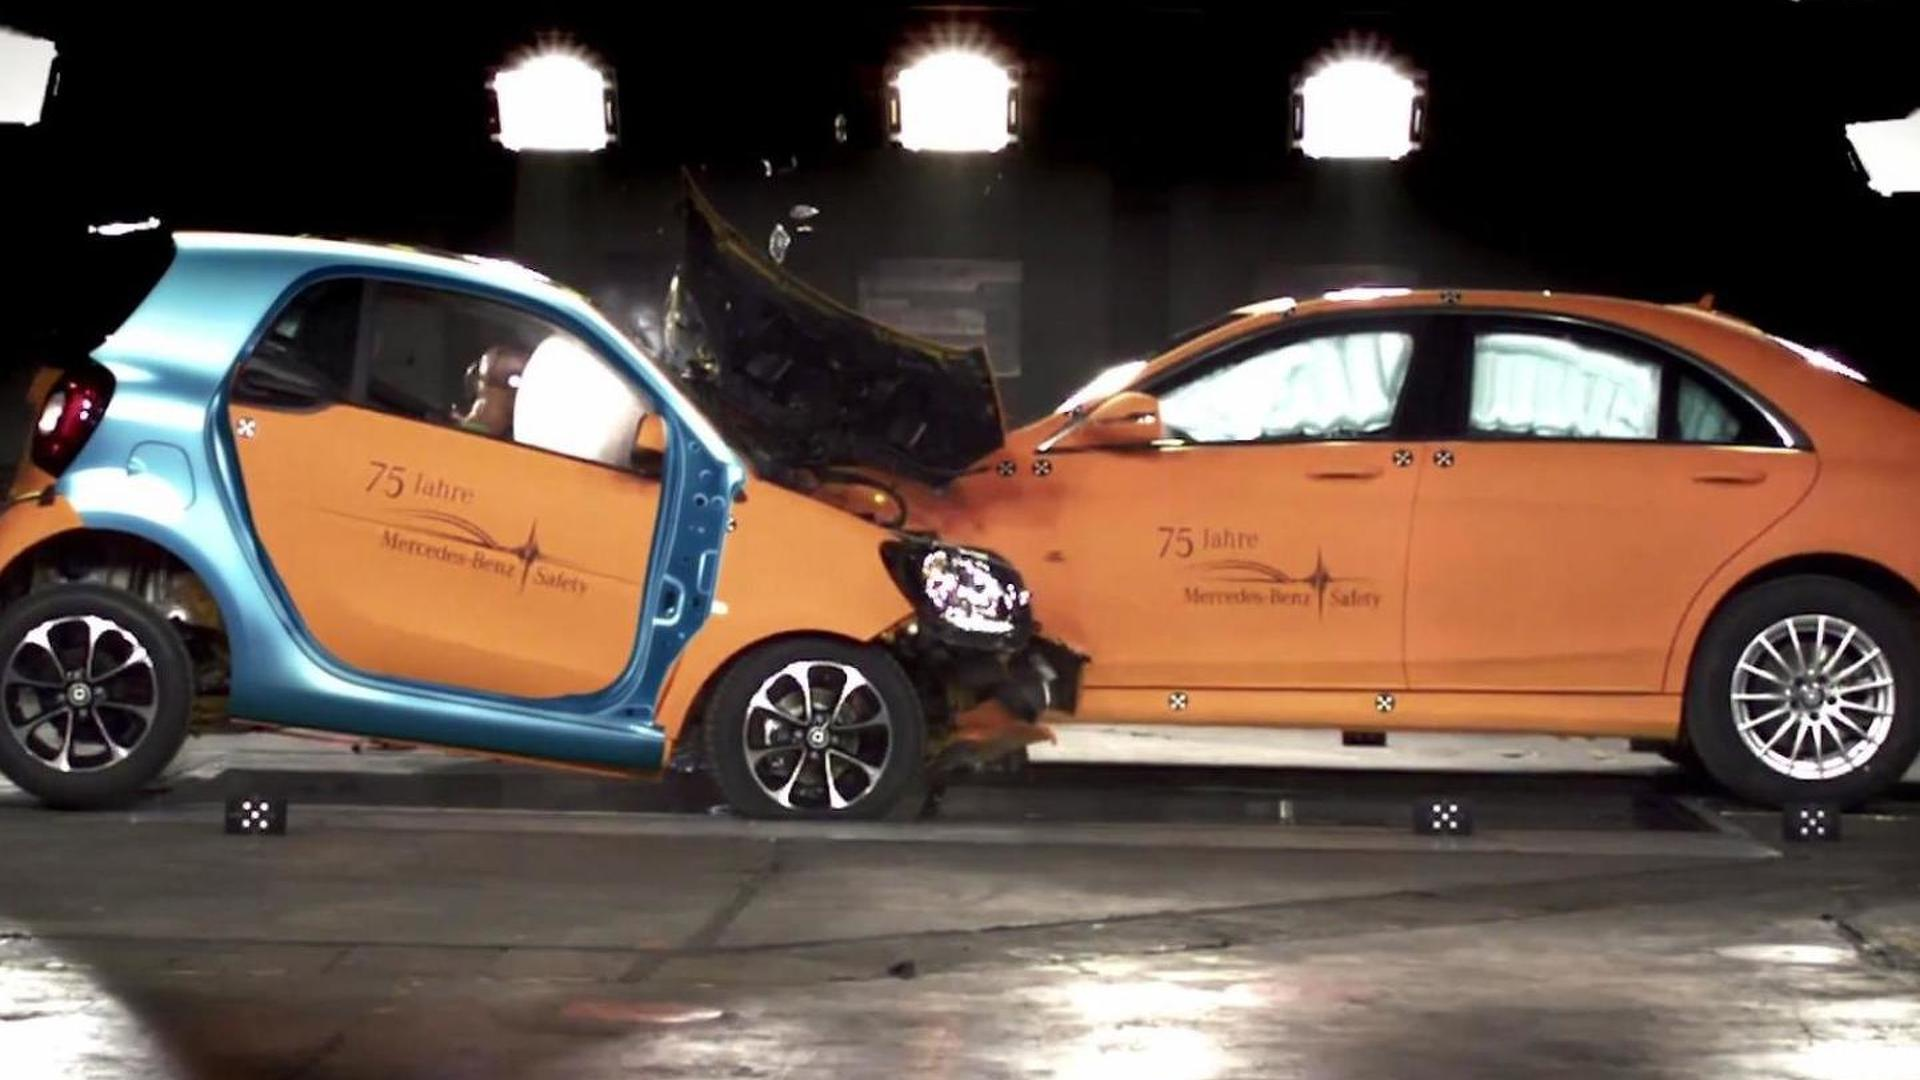 Smart Car Safety >> Smart Fortwo Safety Showcased In Crash Test Video With